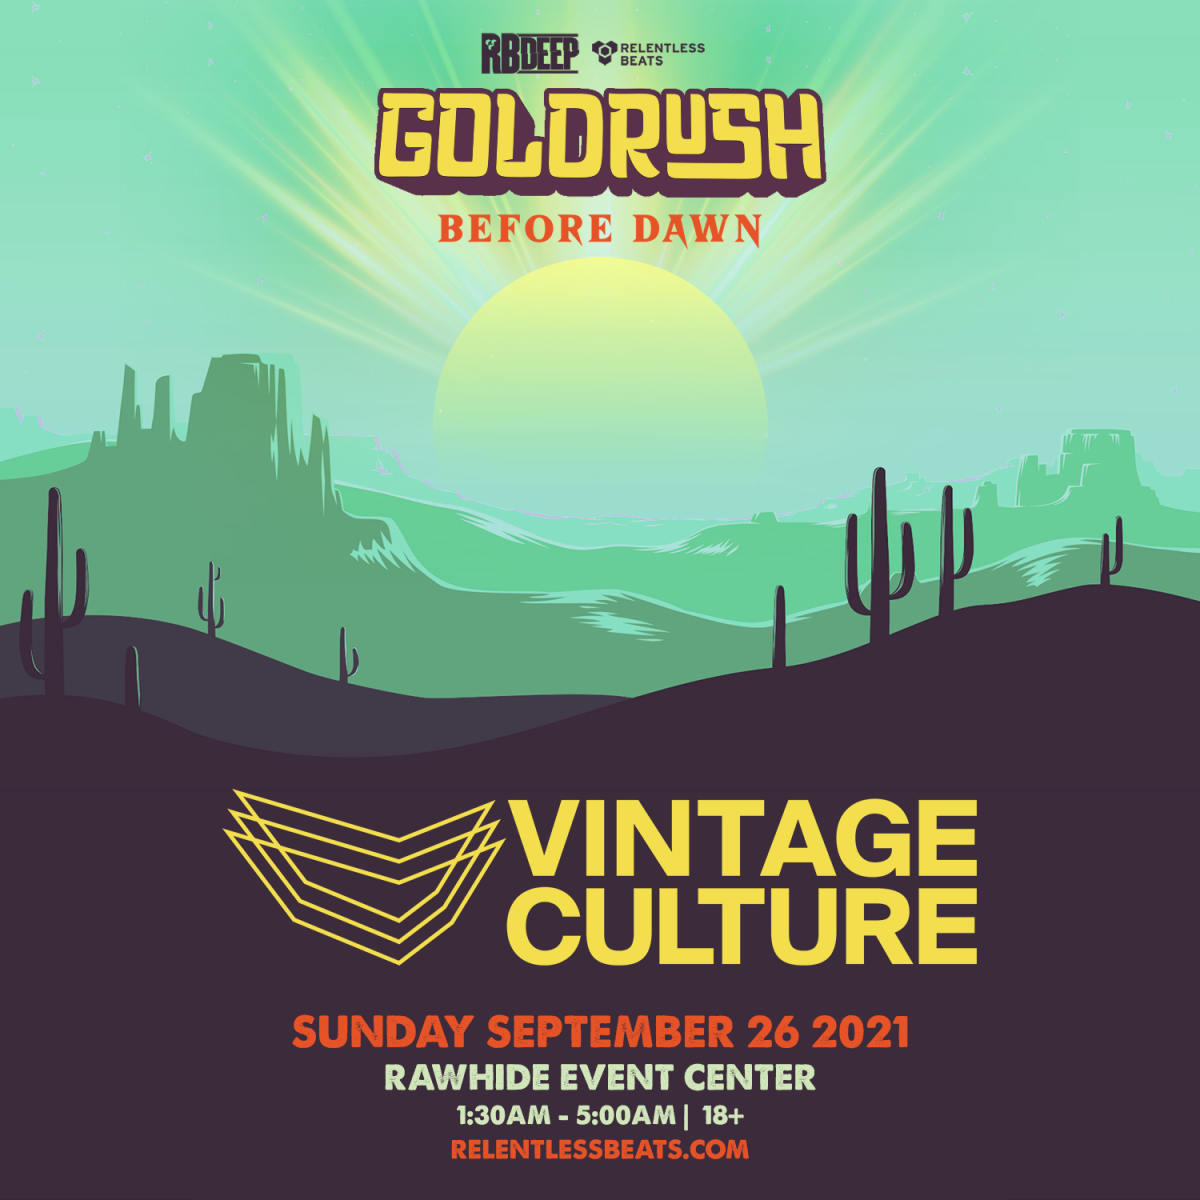 Flyer for Vintage Culture | Goldrush Day 3 Afterparty